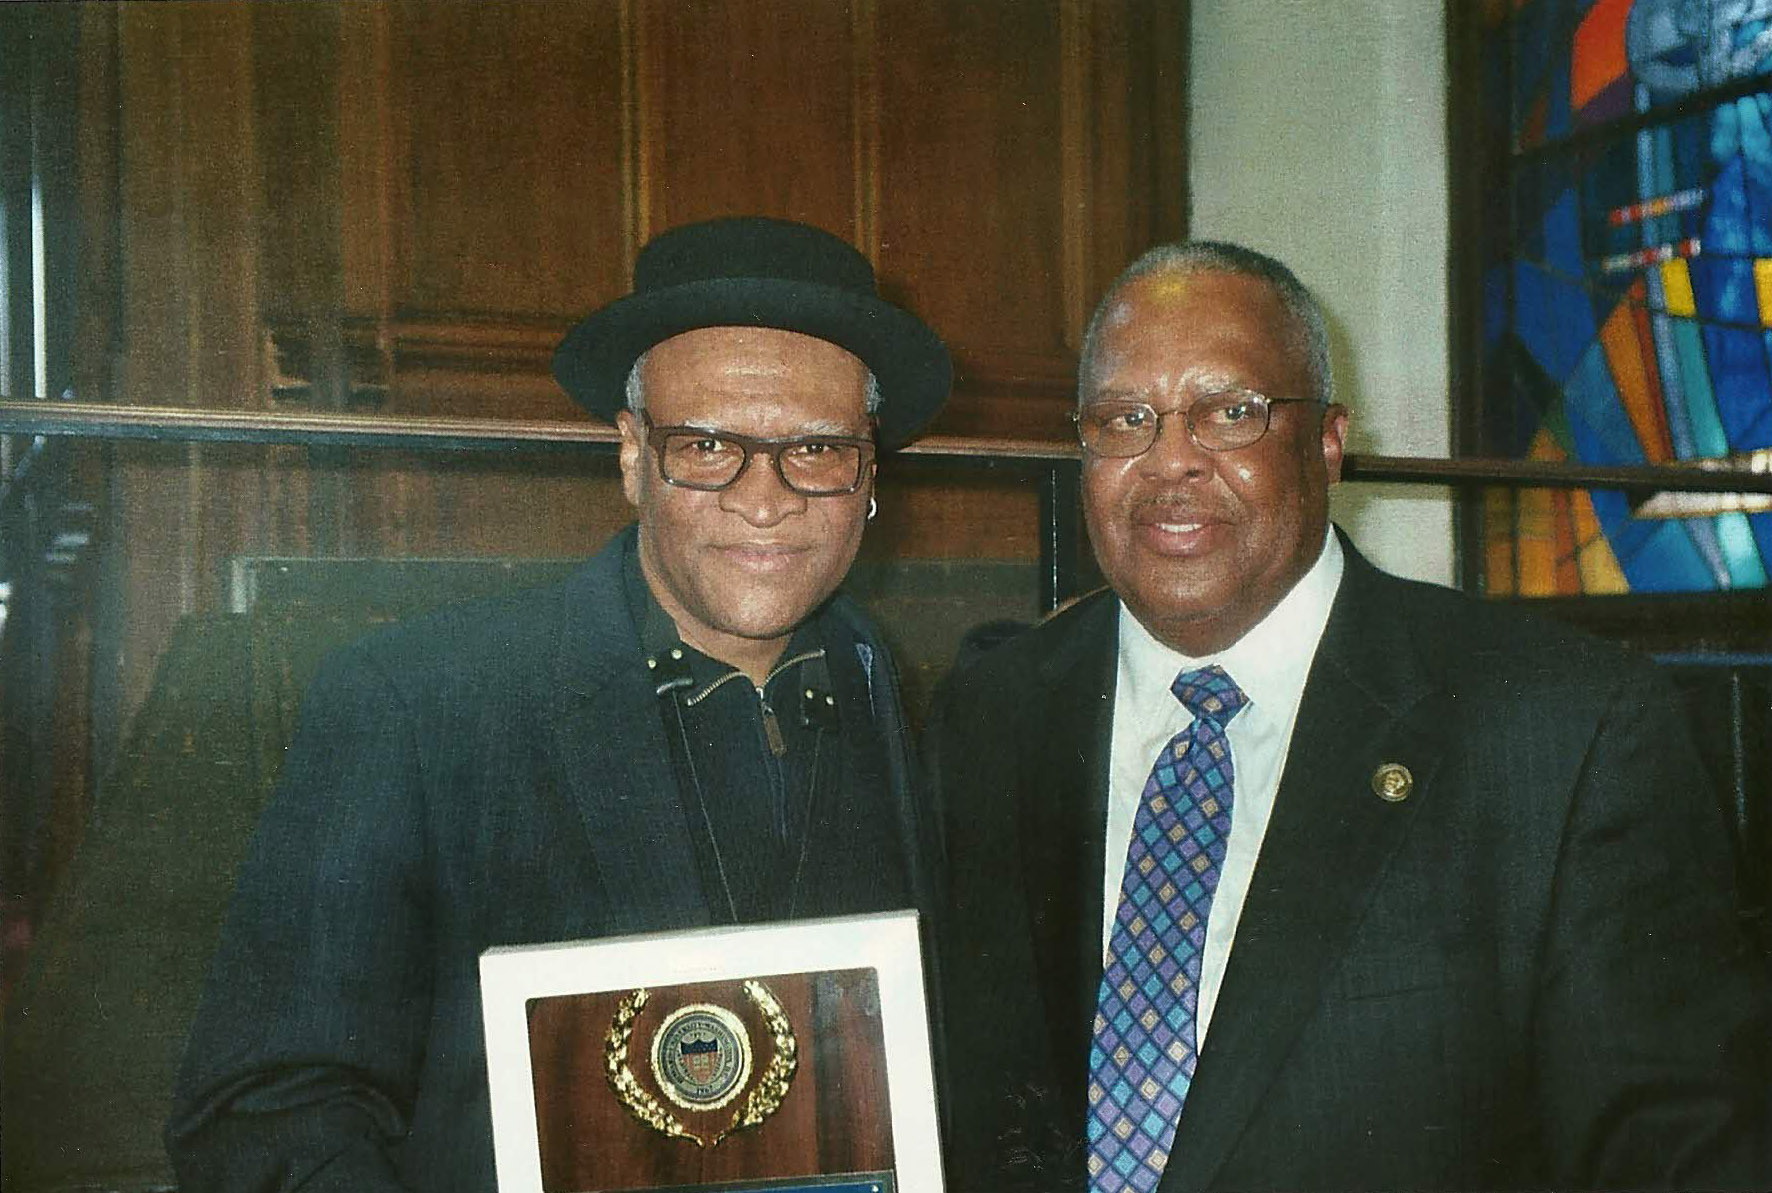 Saxophonist Bobby Watson and professor Fred Irby, III on March 7, 2013